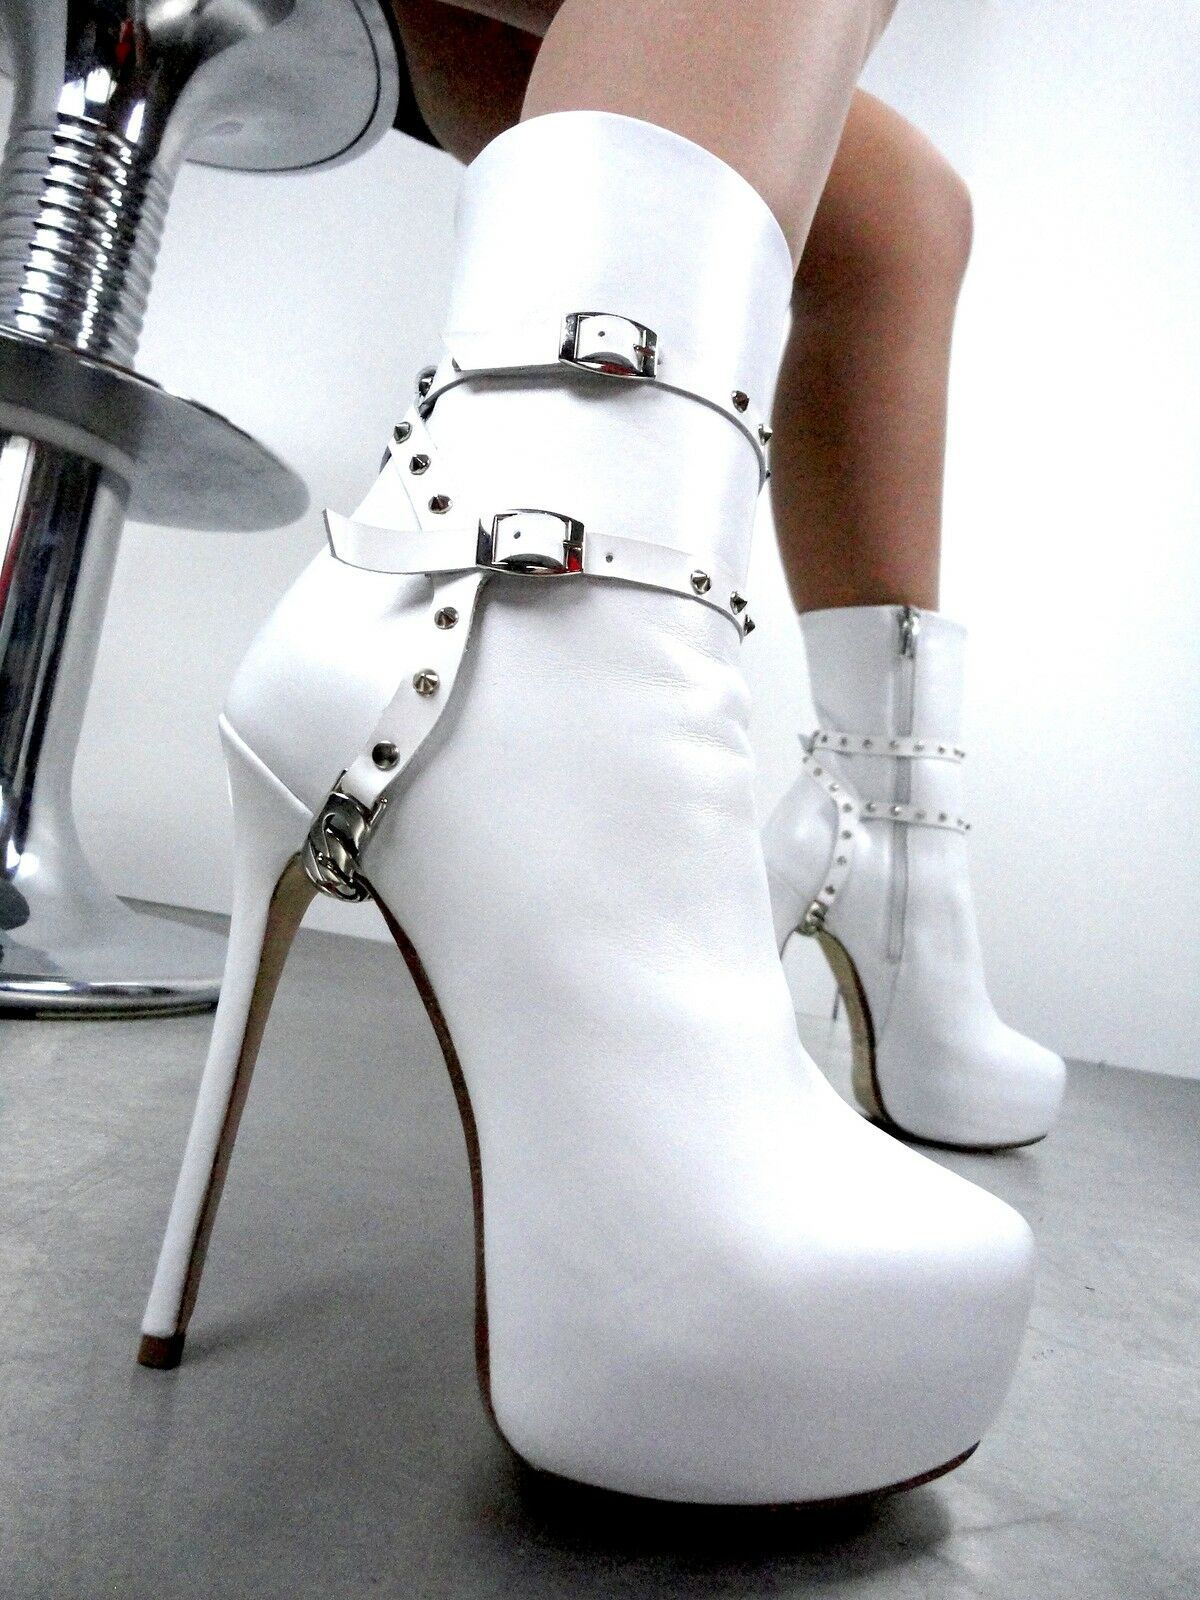 CQ COUTURE ANKLE CUSTOM PLATFORM BOOT BOOT BOOT STIEFEL STIVALI CHAIN STUD WHITE BIANCO 42 86c28e